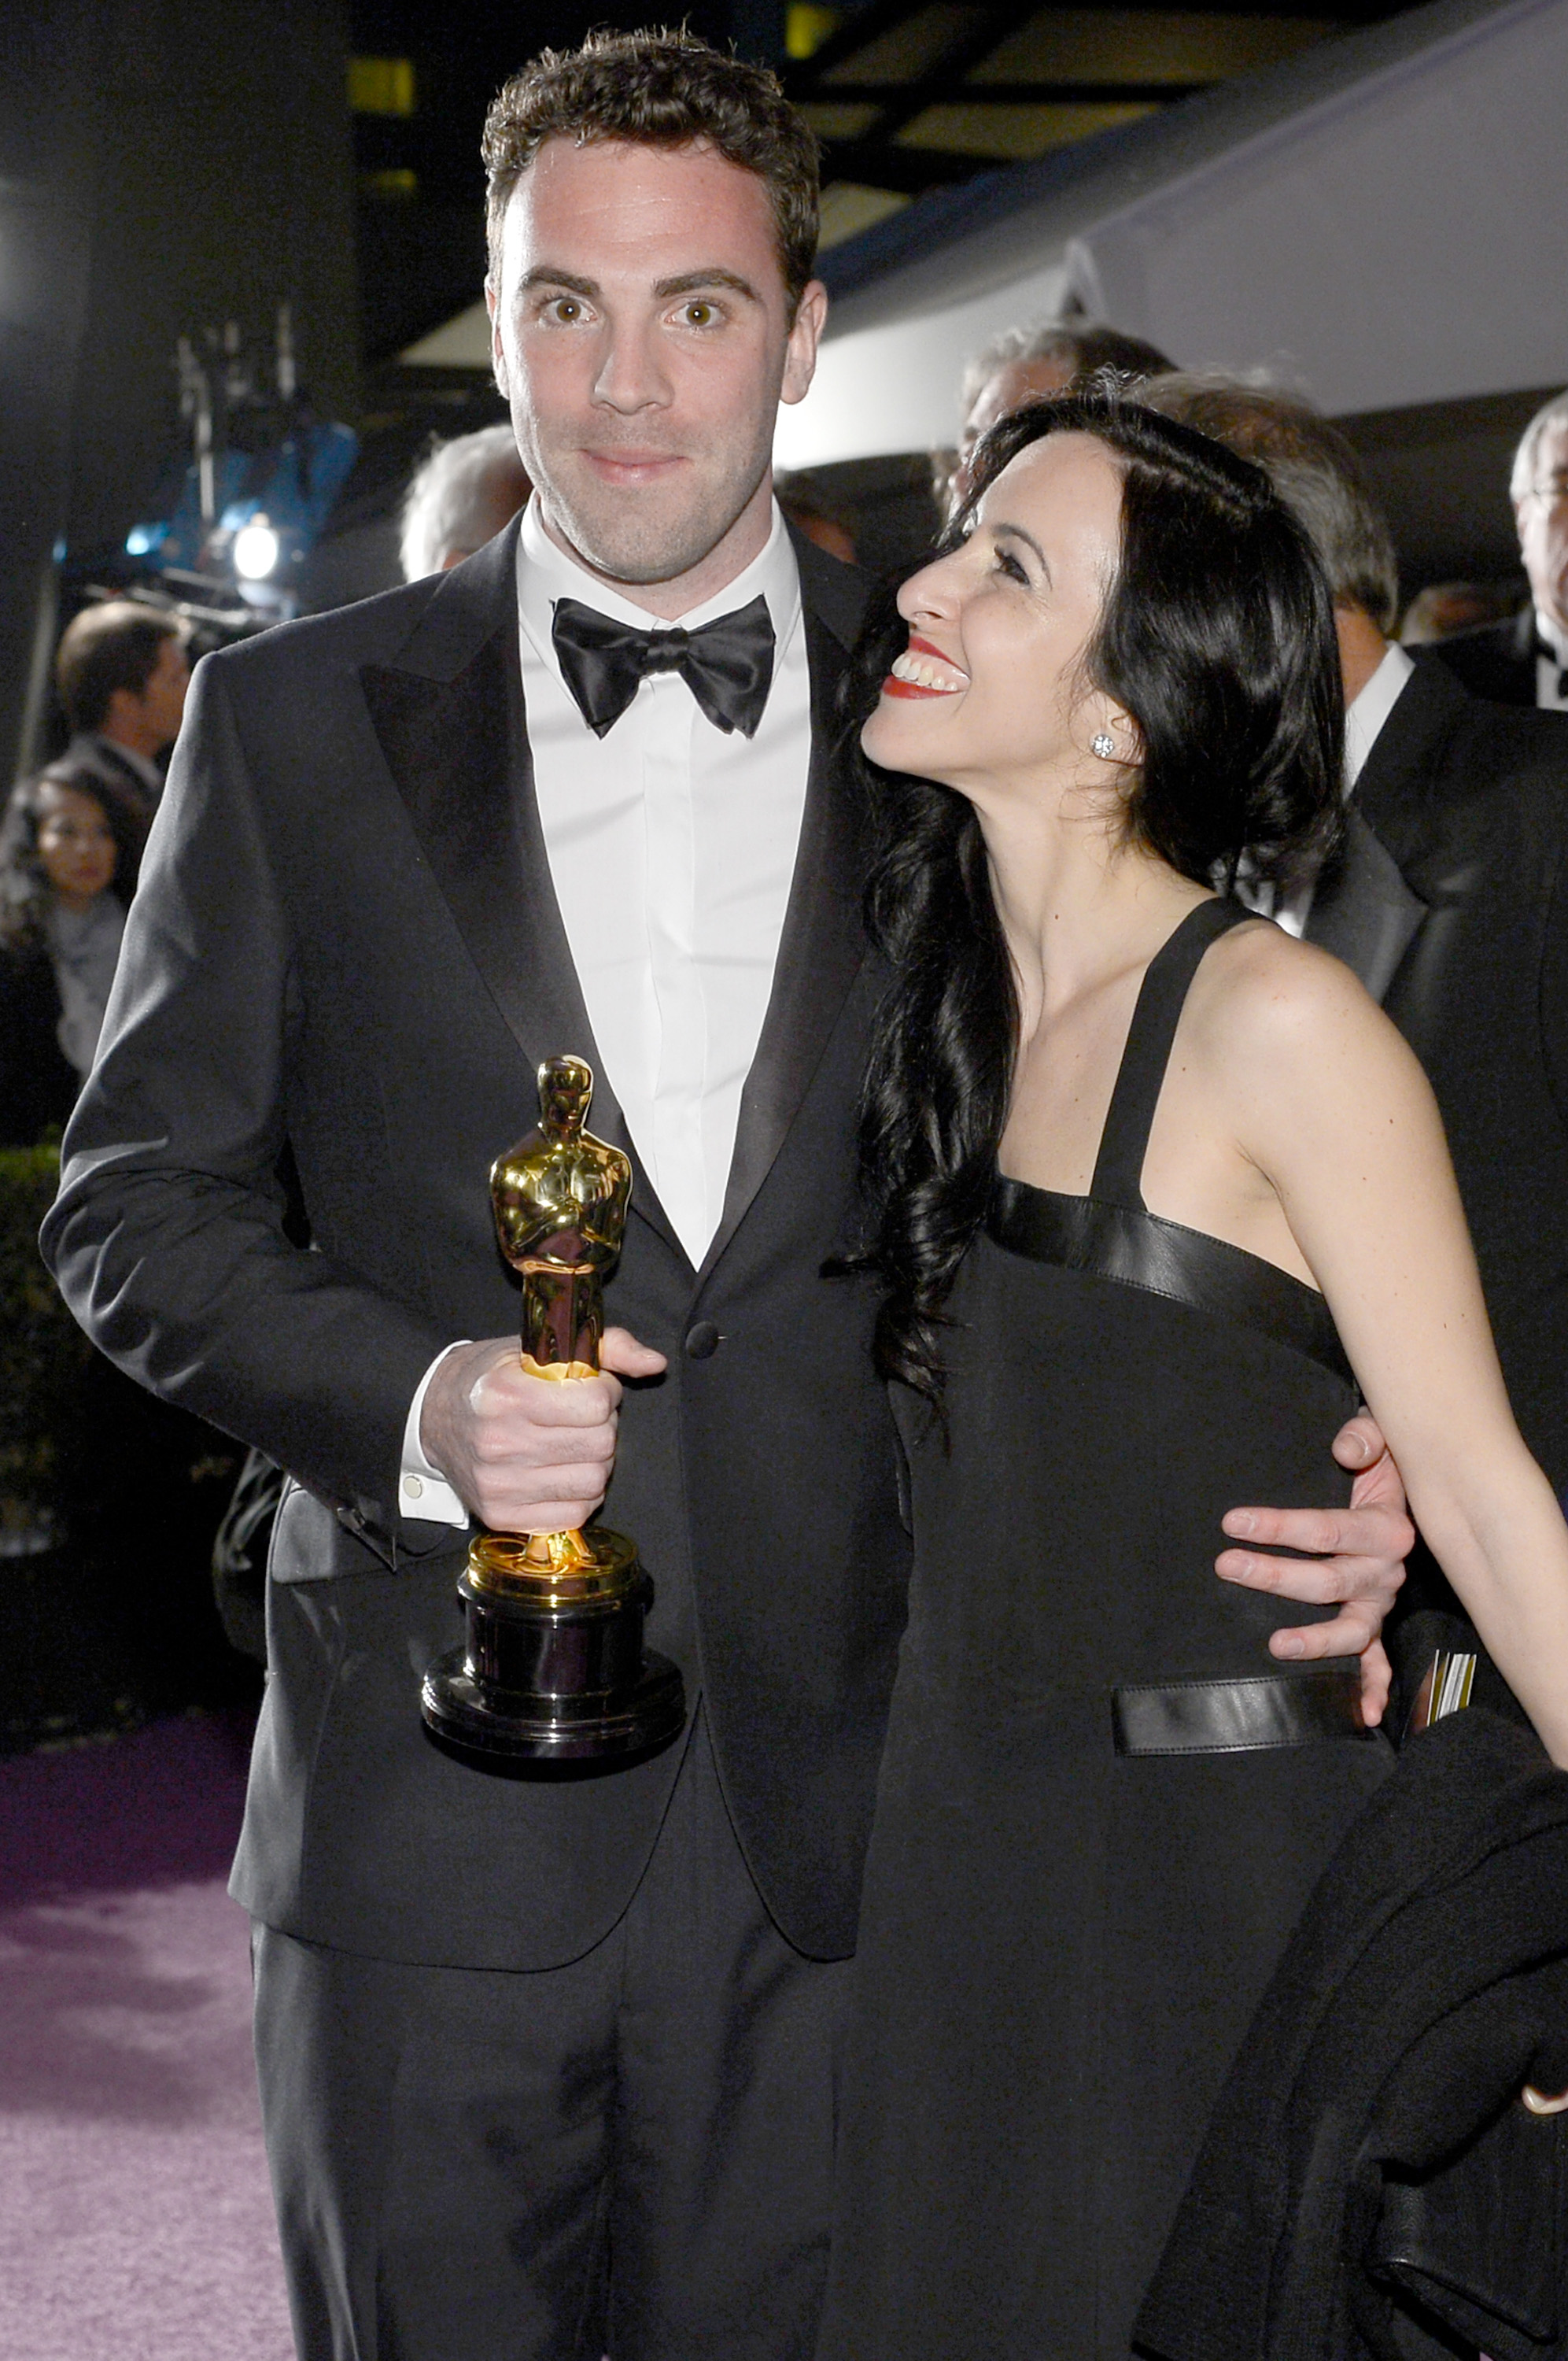 Mark Paterson and Tamara Garabedian were all smiles after the Academy Awards.